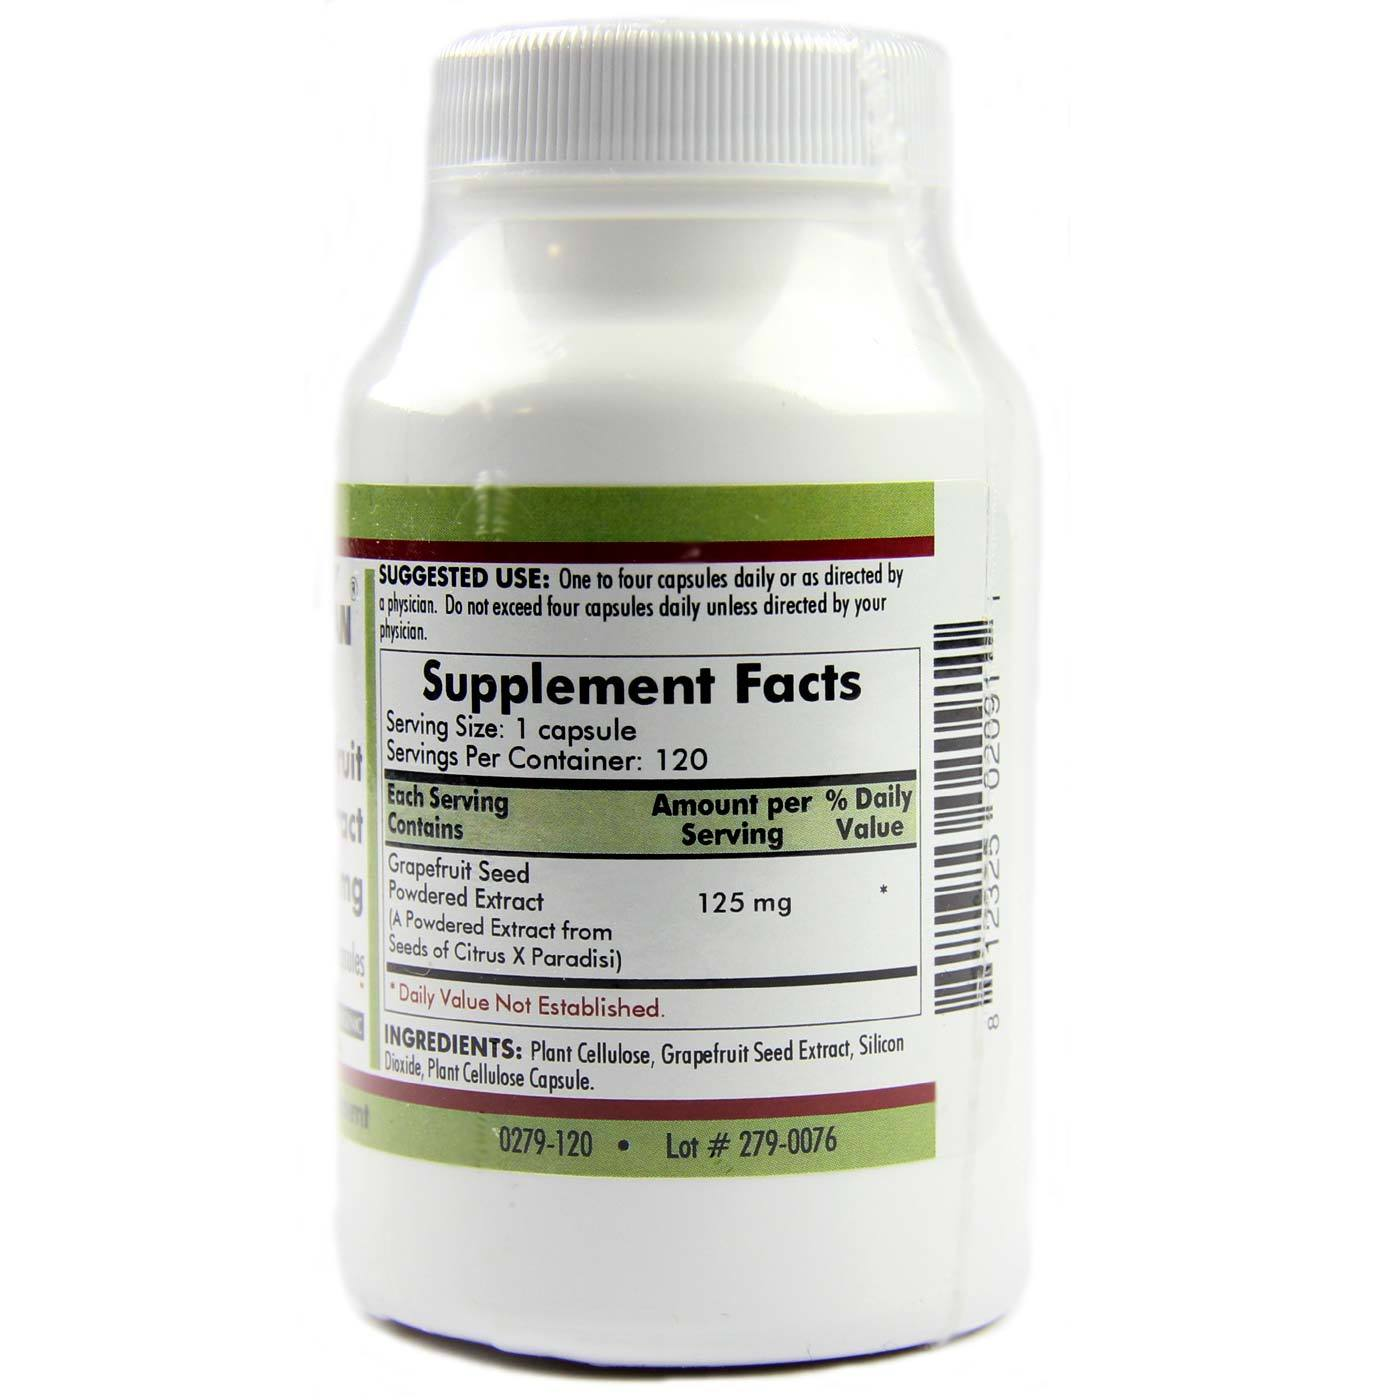 Kirkman Labs Grapefruit Seed Extract 125 Mg Hypoallergenic - 120 VCapsules